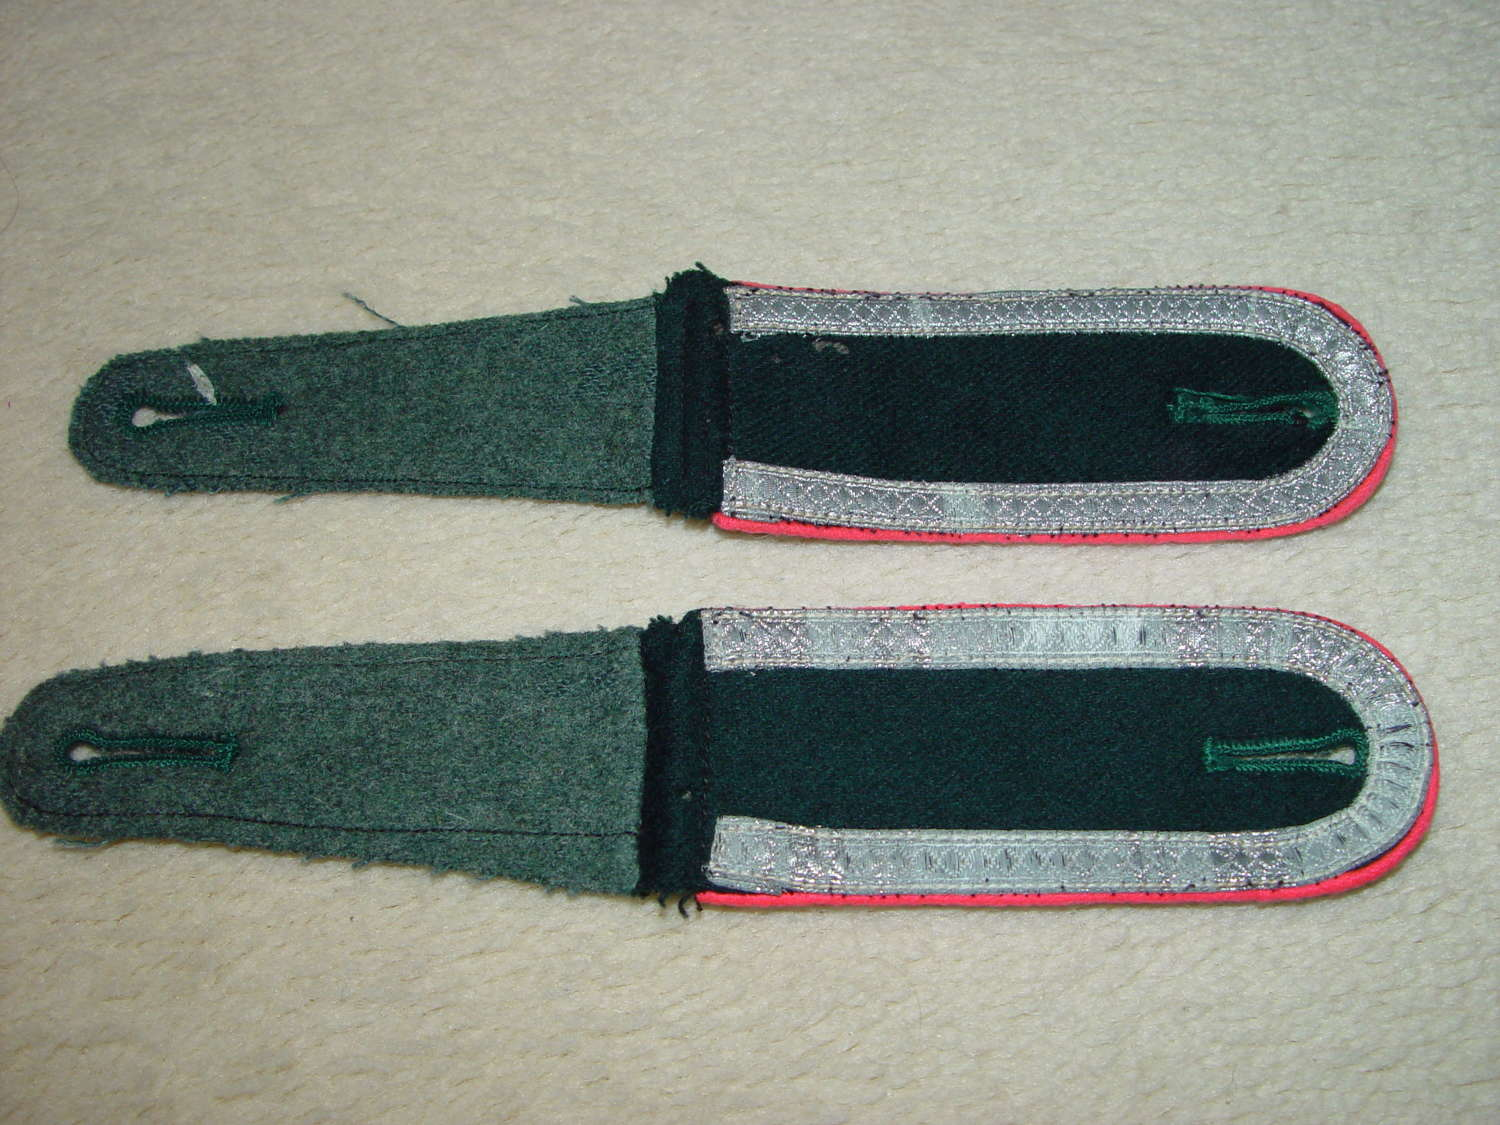 Wehrmacht NCO shoulder straps panzer pink piped for M36 tunic